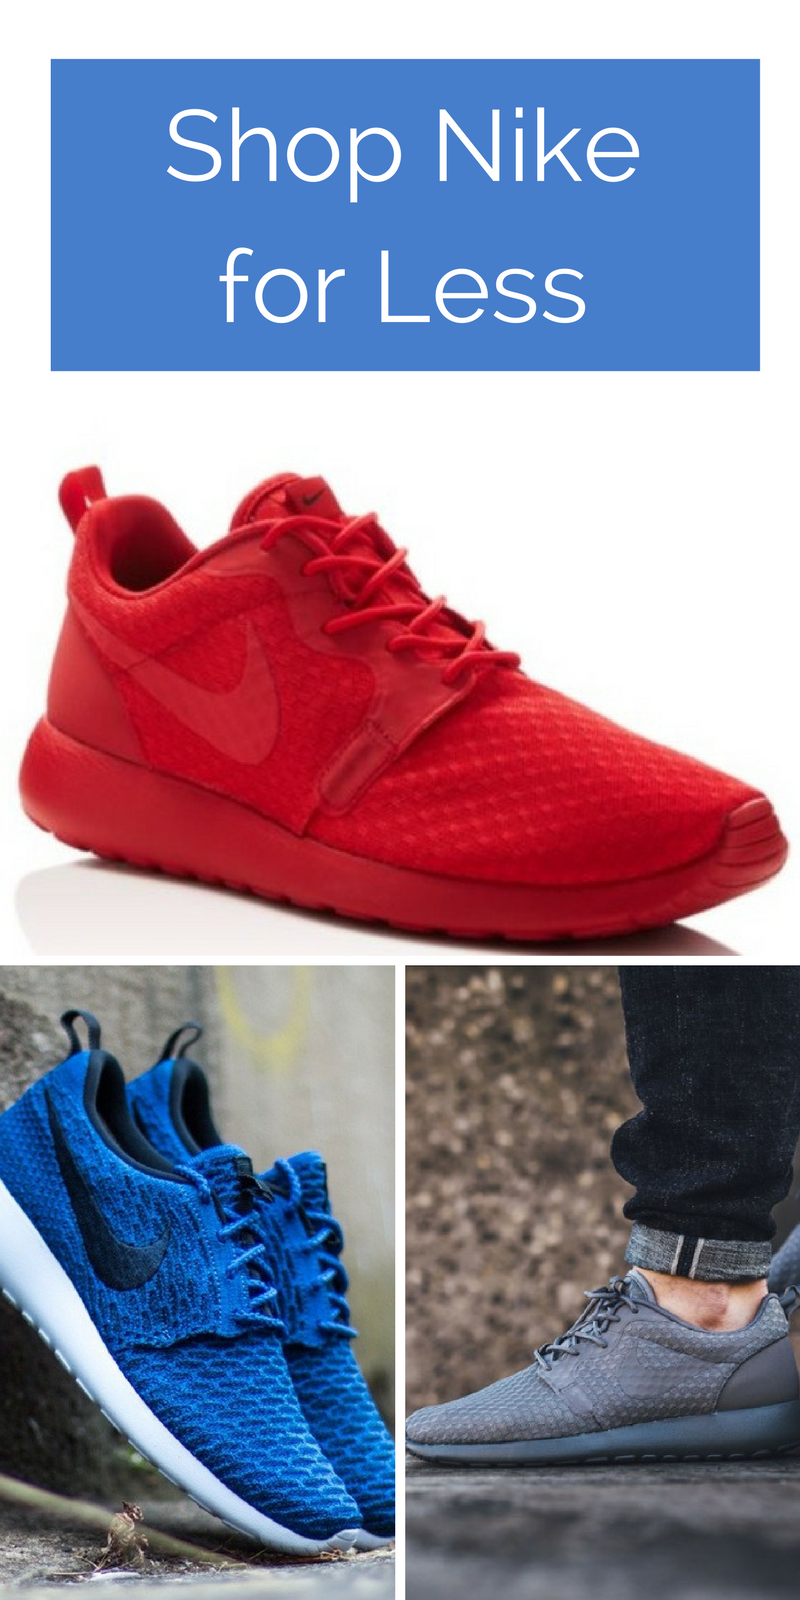 sports shoes 342cf b91f7 Shop and sell Nike, Adidas, Under Armour and other top brands on Poshmark.  Find great deals or earn some extra money for holiday shopping.